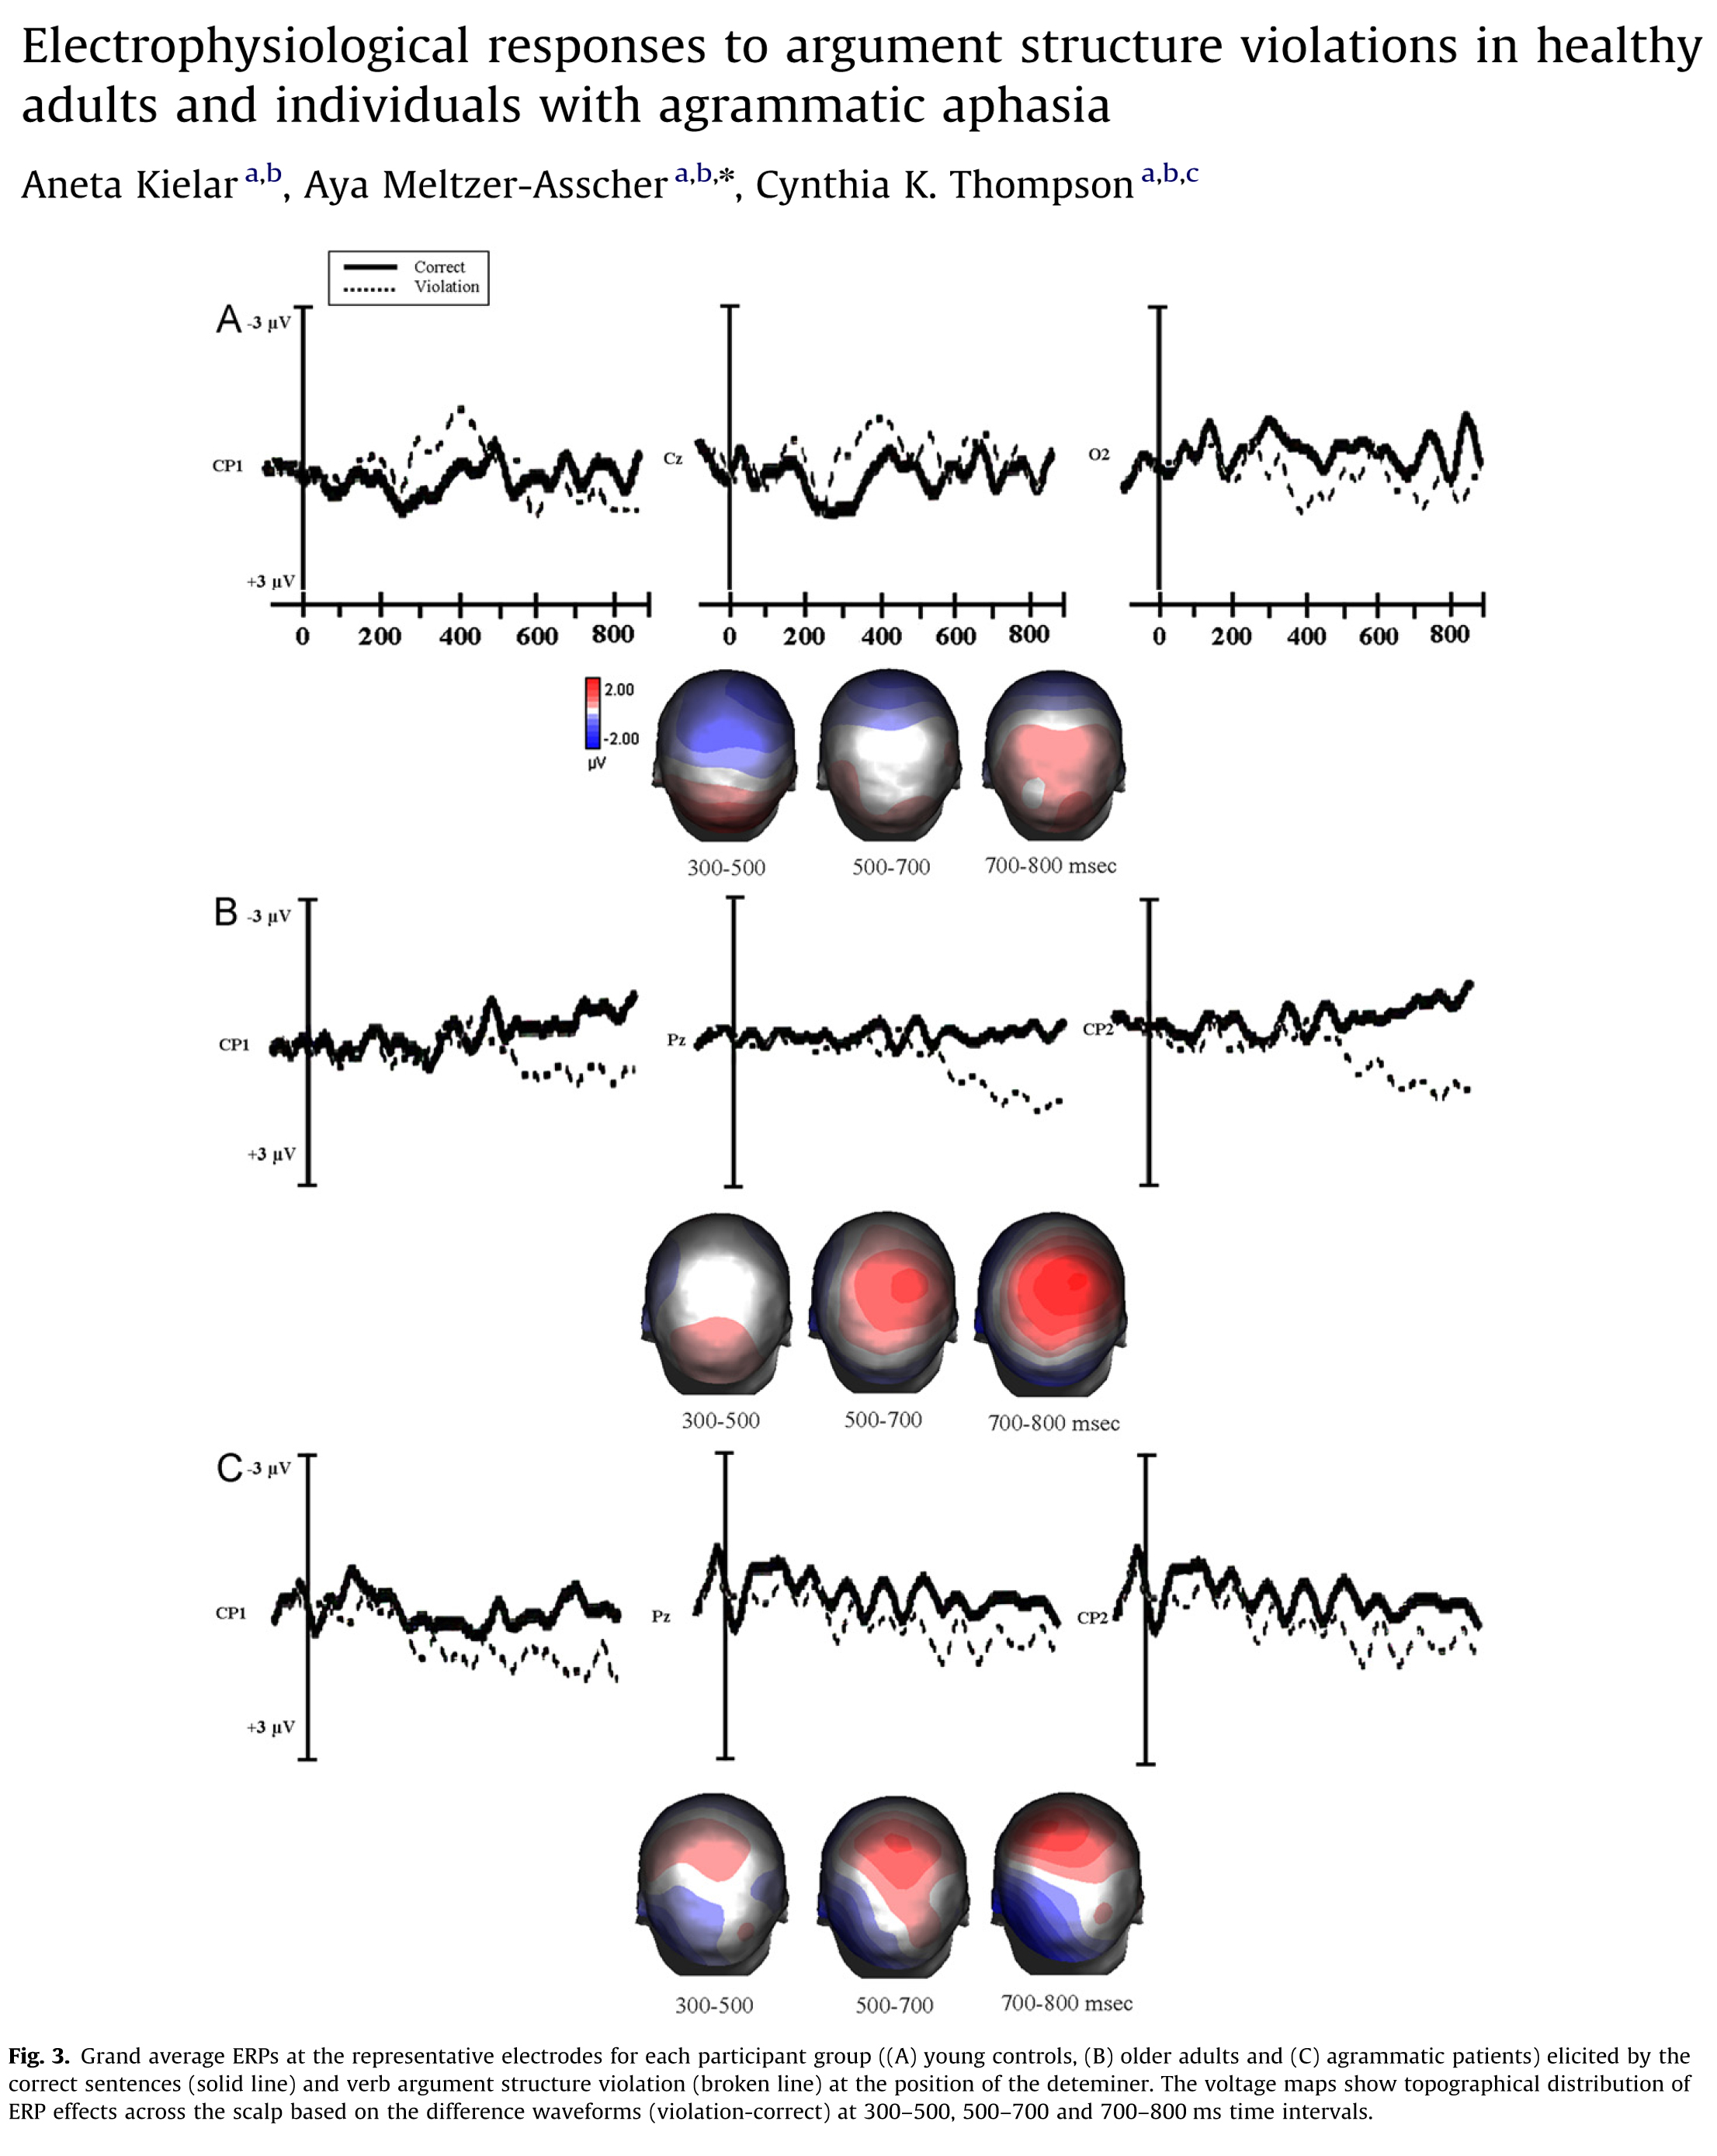 Electrophysiological responses to argument structure violations